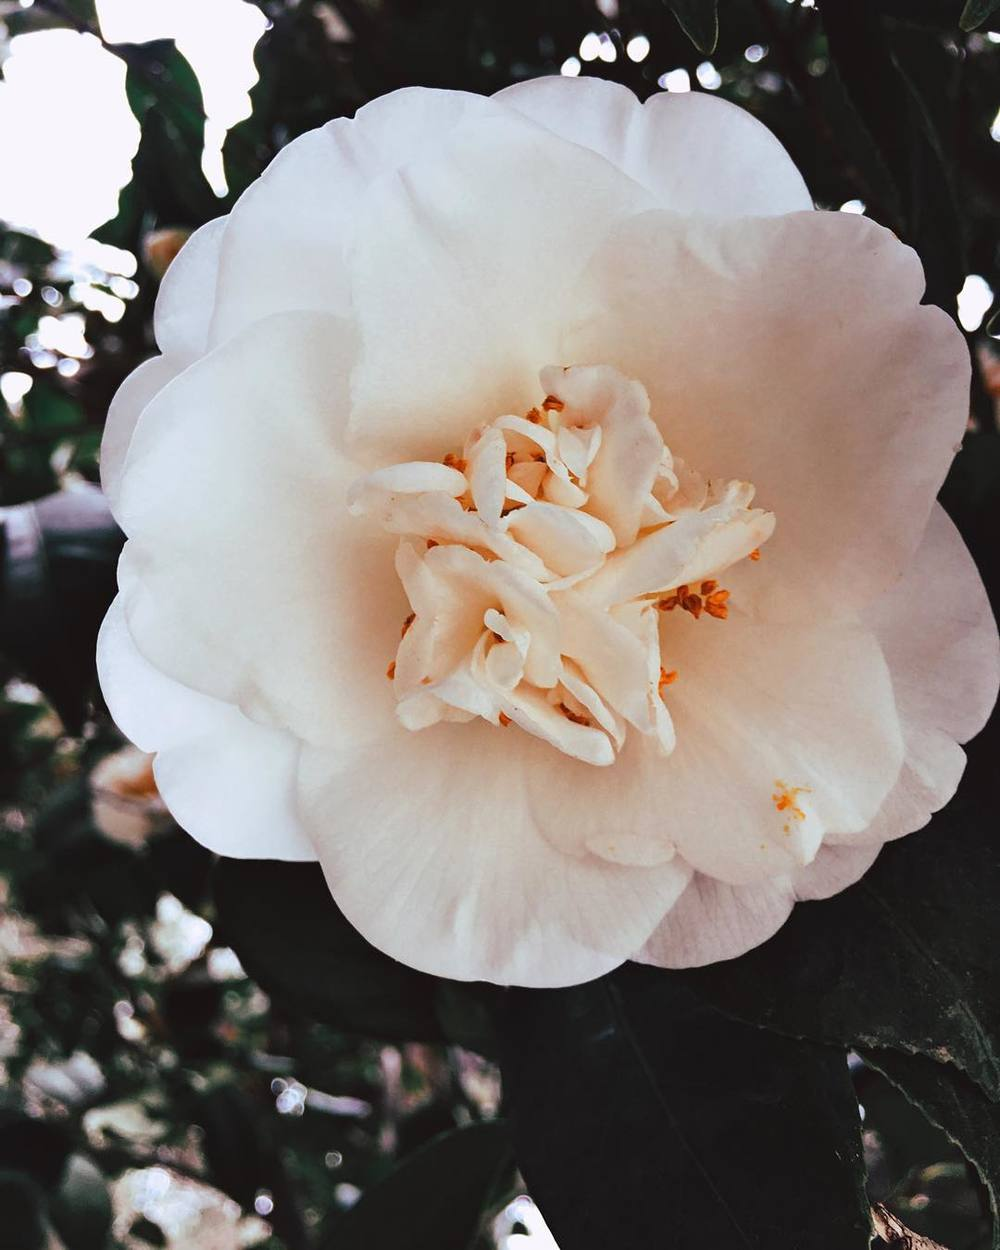 alright-back-onto-the-iphone-adventure-pics-for-a-bit-till-i-load-up-my-next-slr-stuff-fabulous-white-flower-all-up-on-the-scrippscollege-margaretfowlergarden-man-i-miss-school-so-much-22366-scrippscollege_23936693214_o.jpg